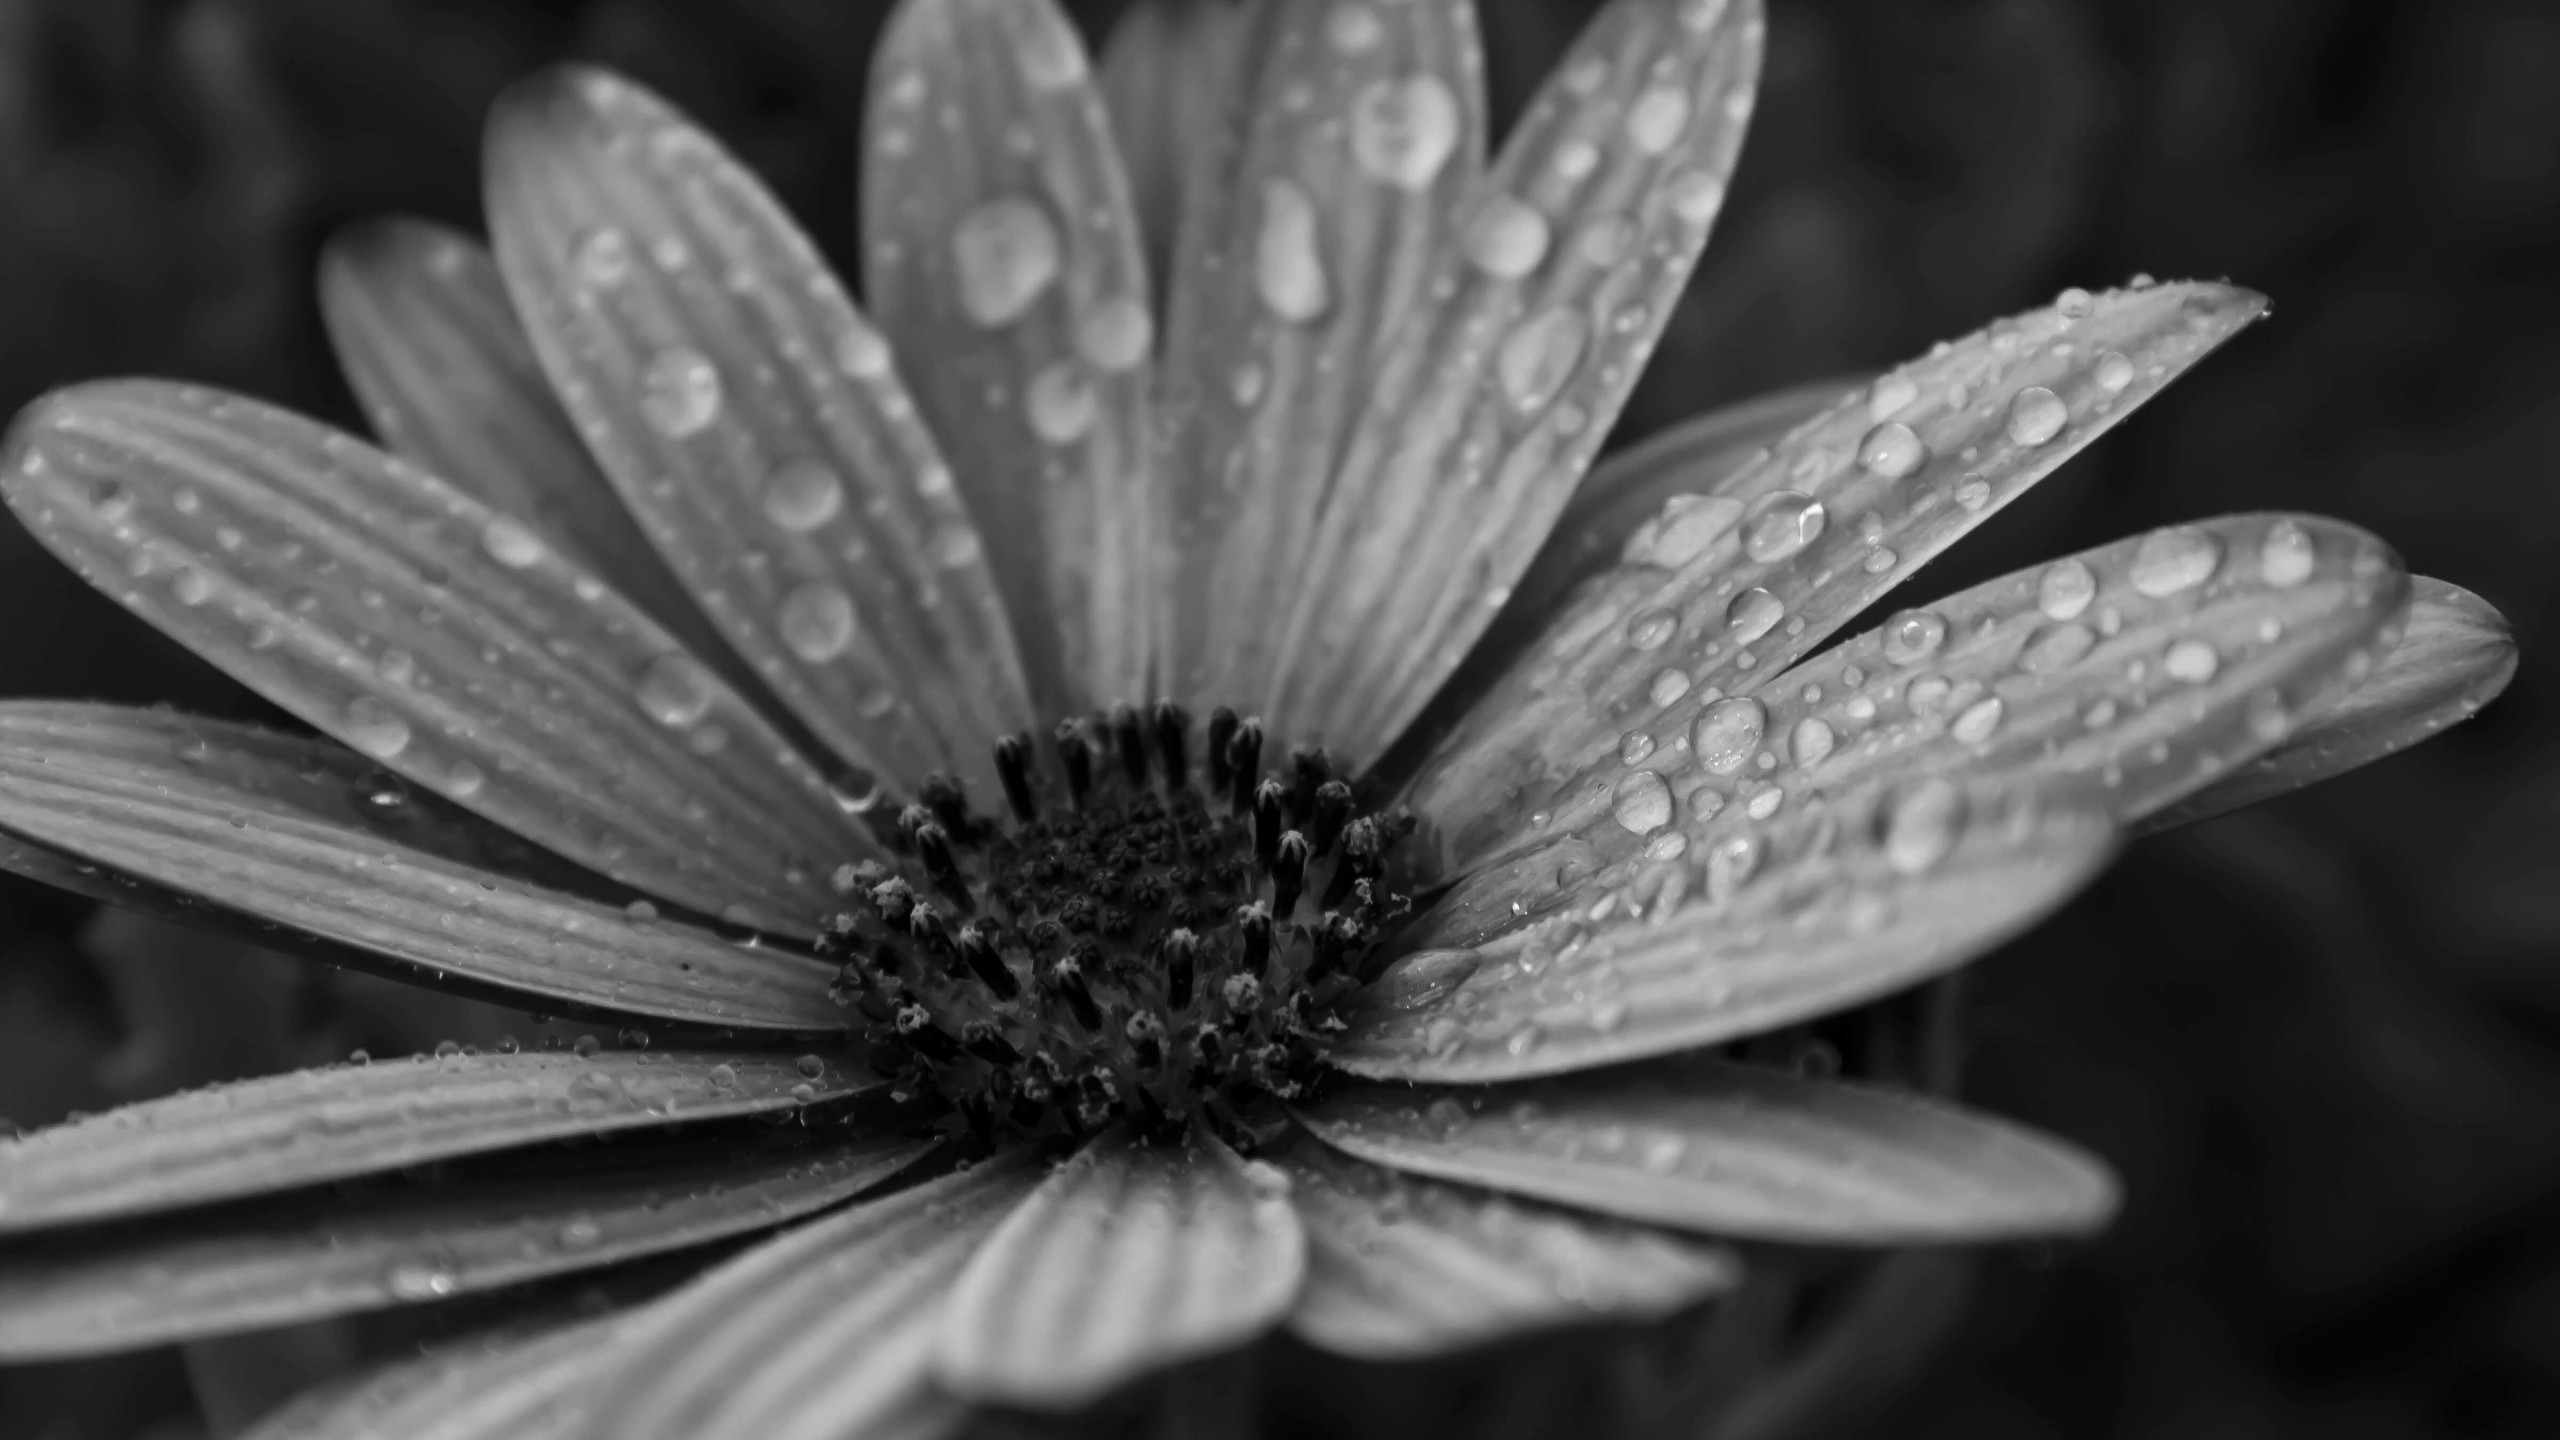 Macro Floral Black & White Wallpaper for Desktop 2560x1440